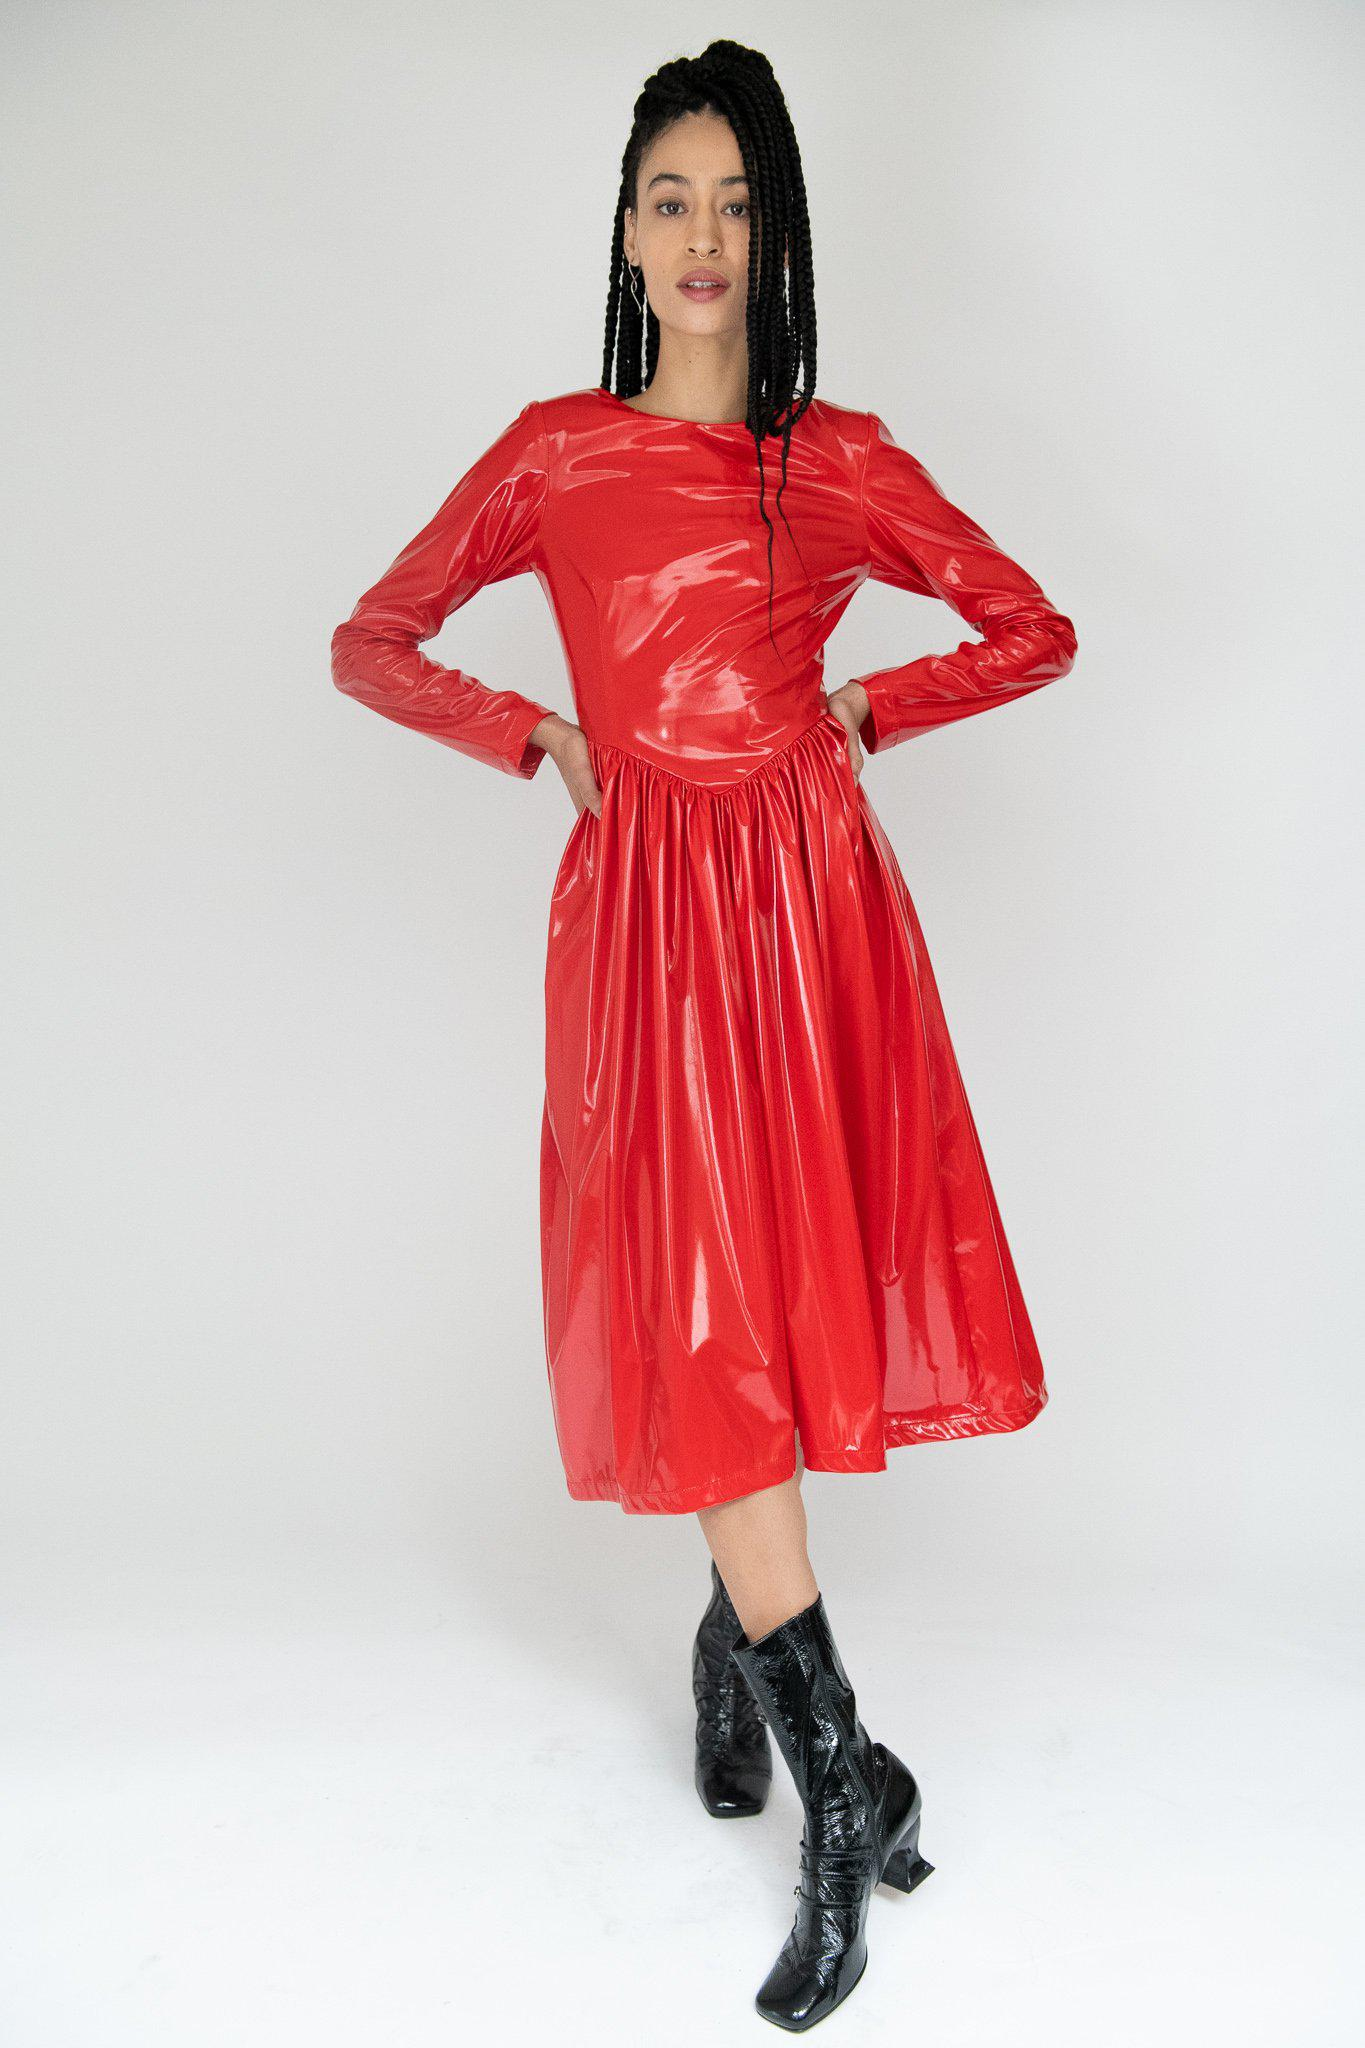 Willow Dress in Chili Red Latex